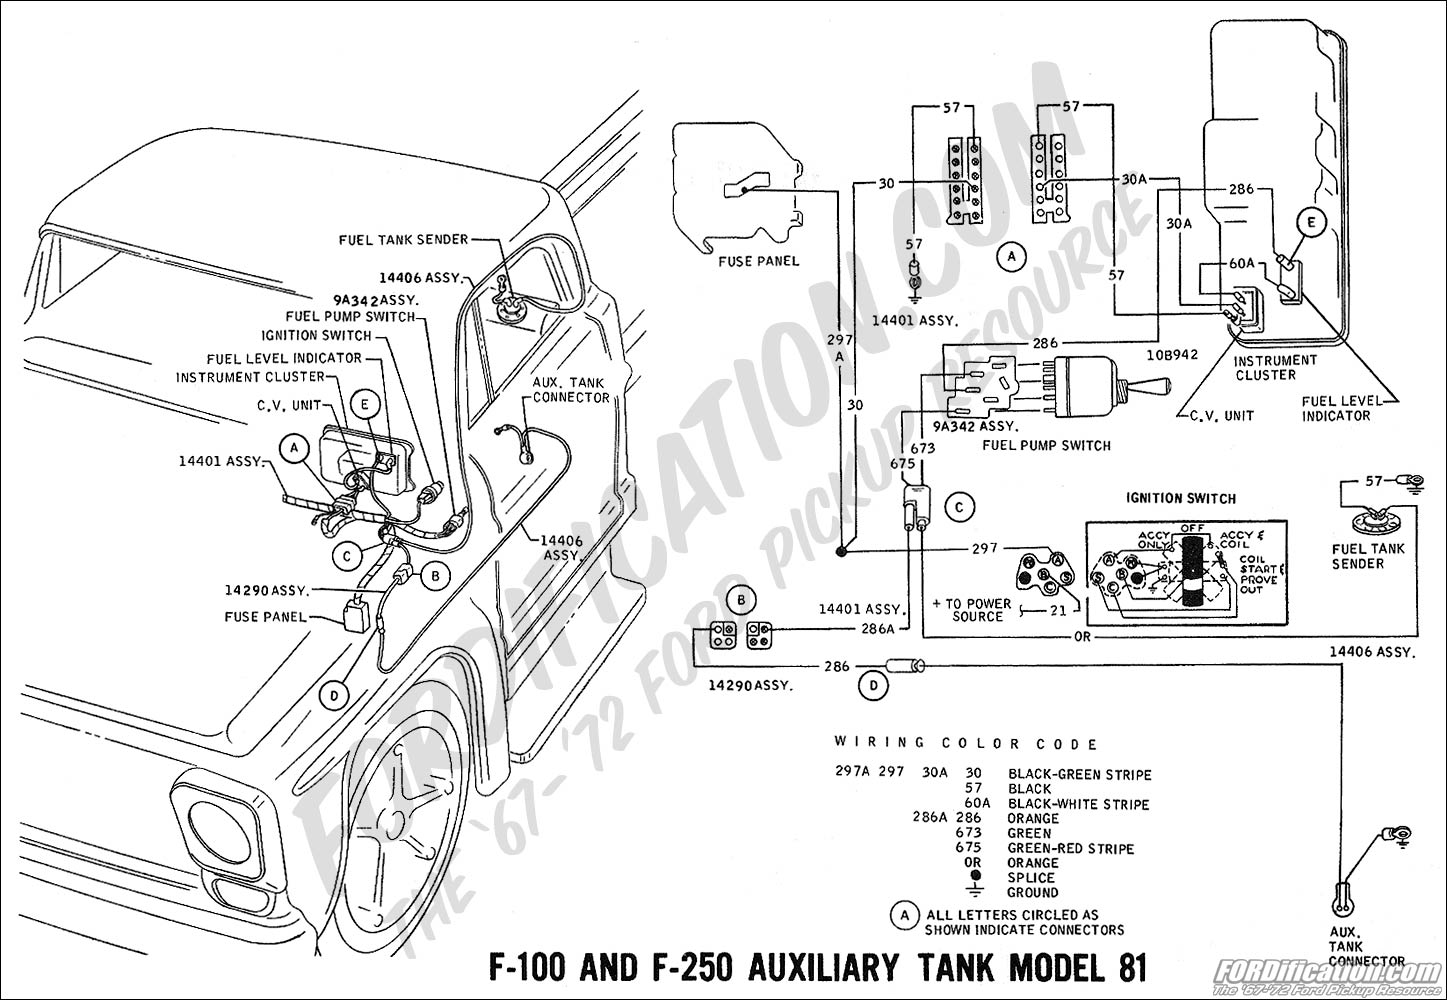 1973 F250 Fuse Box Diagram Wiring Diagrams Collection Collection Chatteriedelavalleedufelin Fr